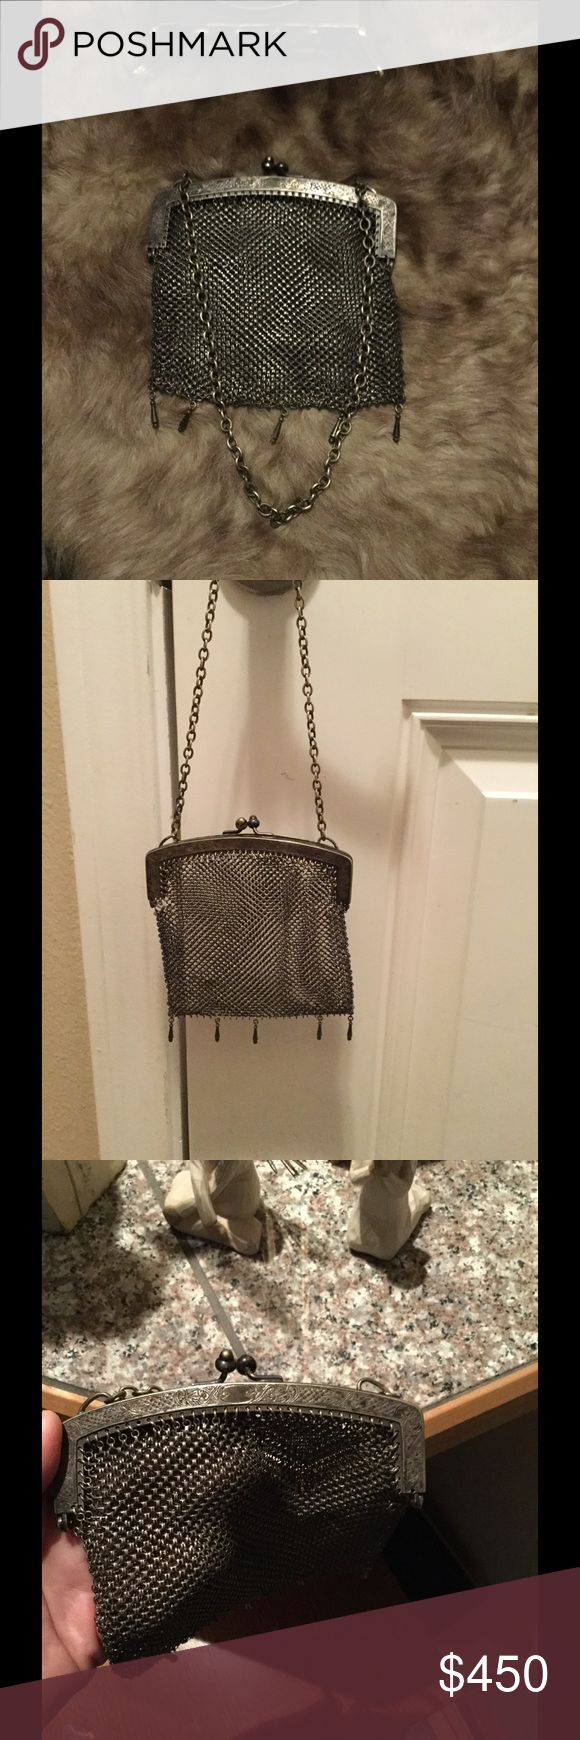 Antique sterling silver purse 🎈price drop 🎈 Antique German sterling silver mesh purse. Why not own a piece of antique history and be stylish at the same time. One area of the purse needs to be fixed. The little loops needs to be lined up and put in hole. To me looks like an easy fix. The bag is still functional even with this fix. I just don't want to fix it because I don't want to do more damage. I found a range of prices on this bag. My price is pretty reasonable. I will take reasonable…